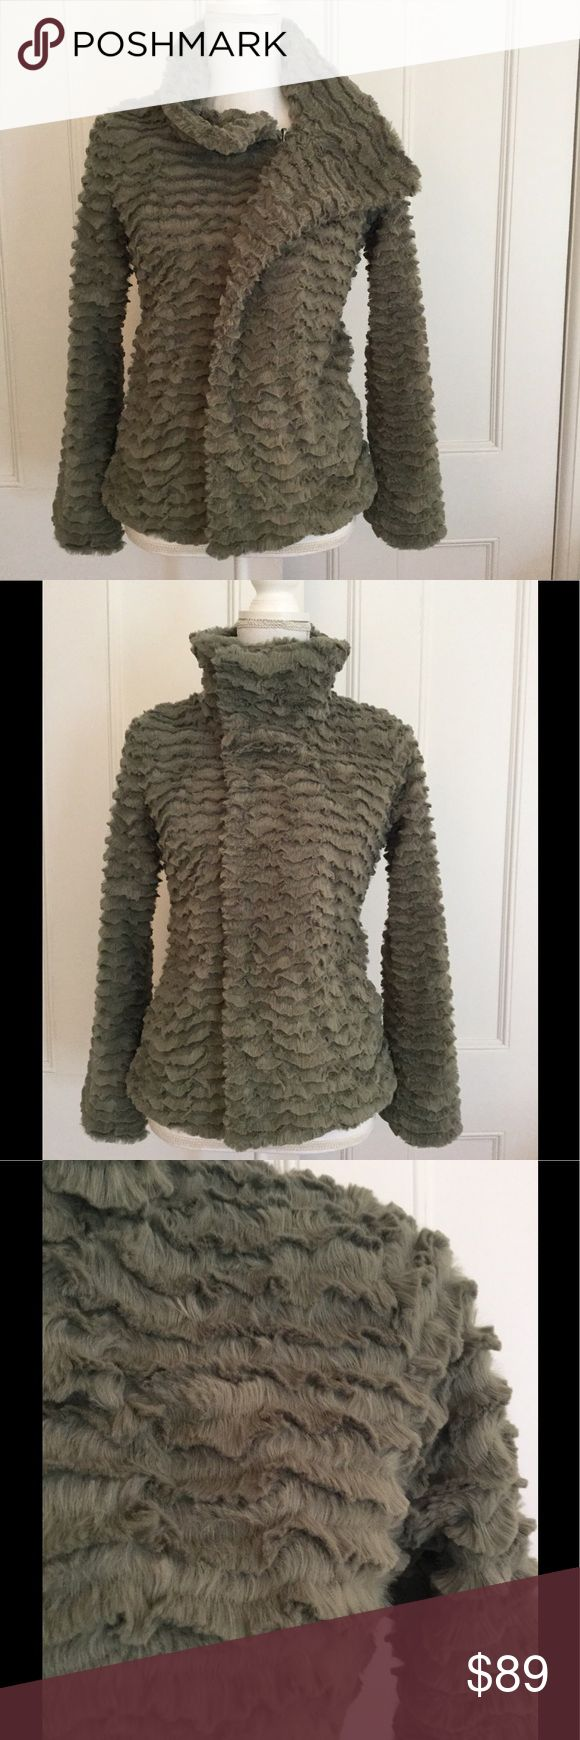 """Patagonia NWT """"Pelage"""" jacket Size XS Olive fluffy Patagonia NWT womens Pelage jacket. Size XS Diagonal front zip and snap. 2 side pockets.  Lovely light olive color.  Beautiful design to material. Retail $149 Patagonia Jackets & Coats"""